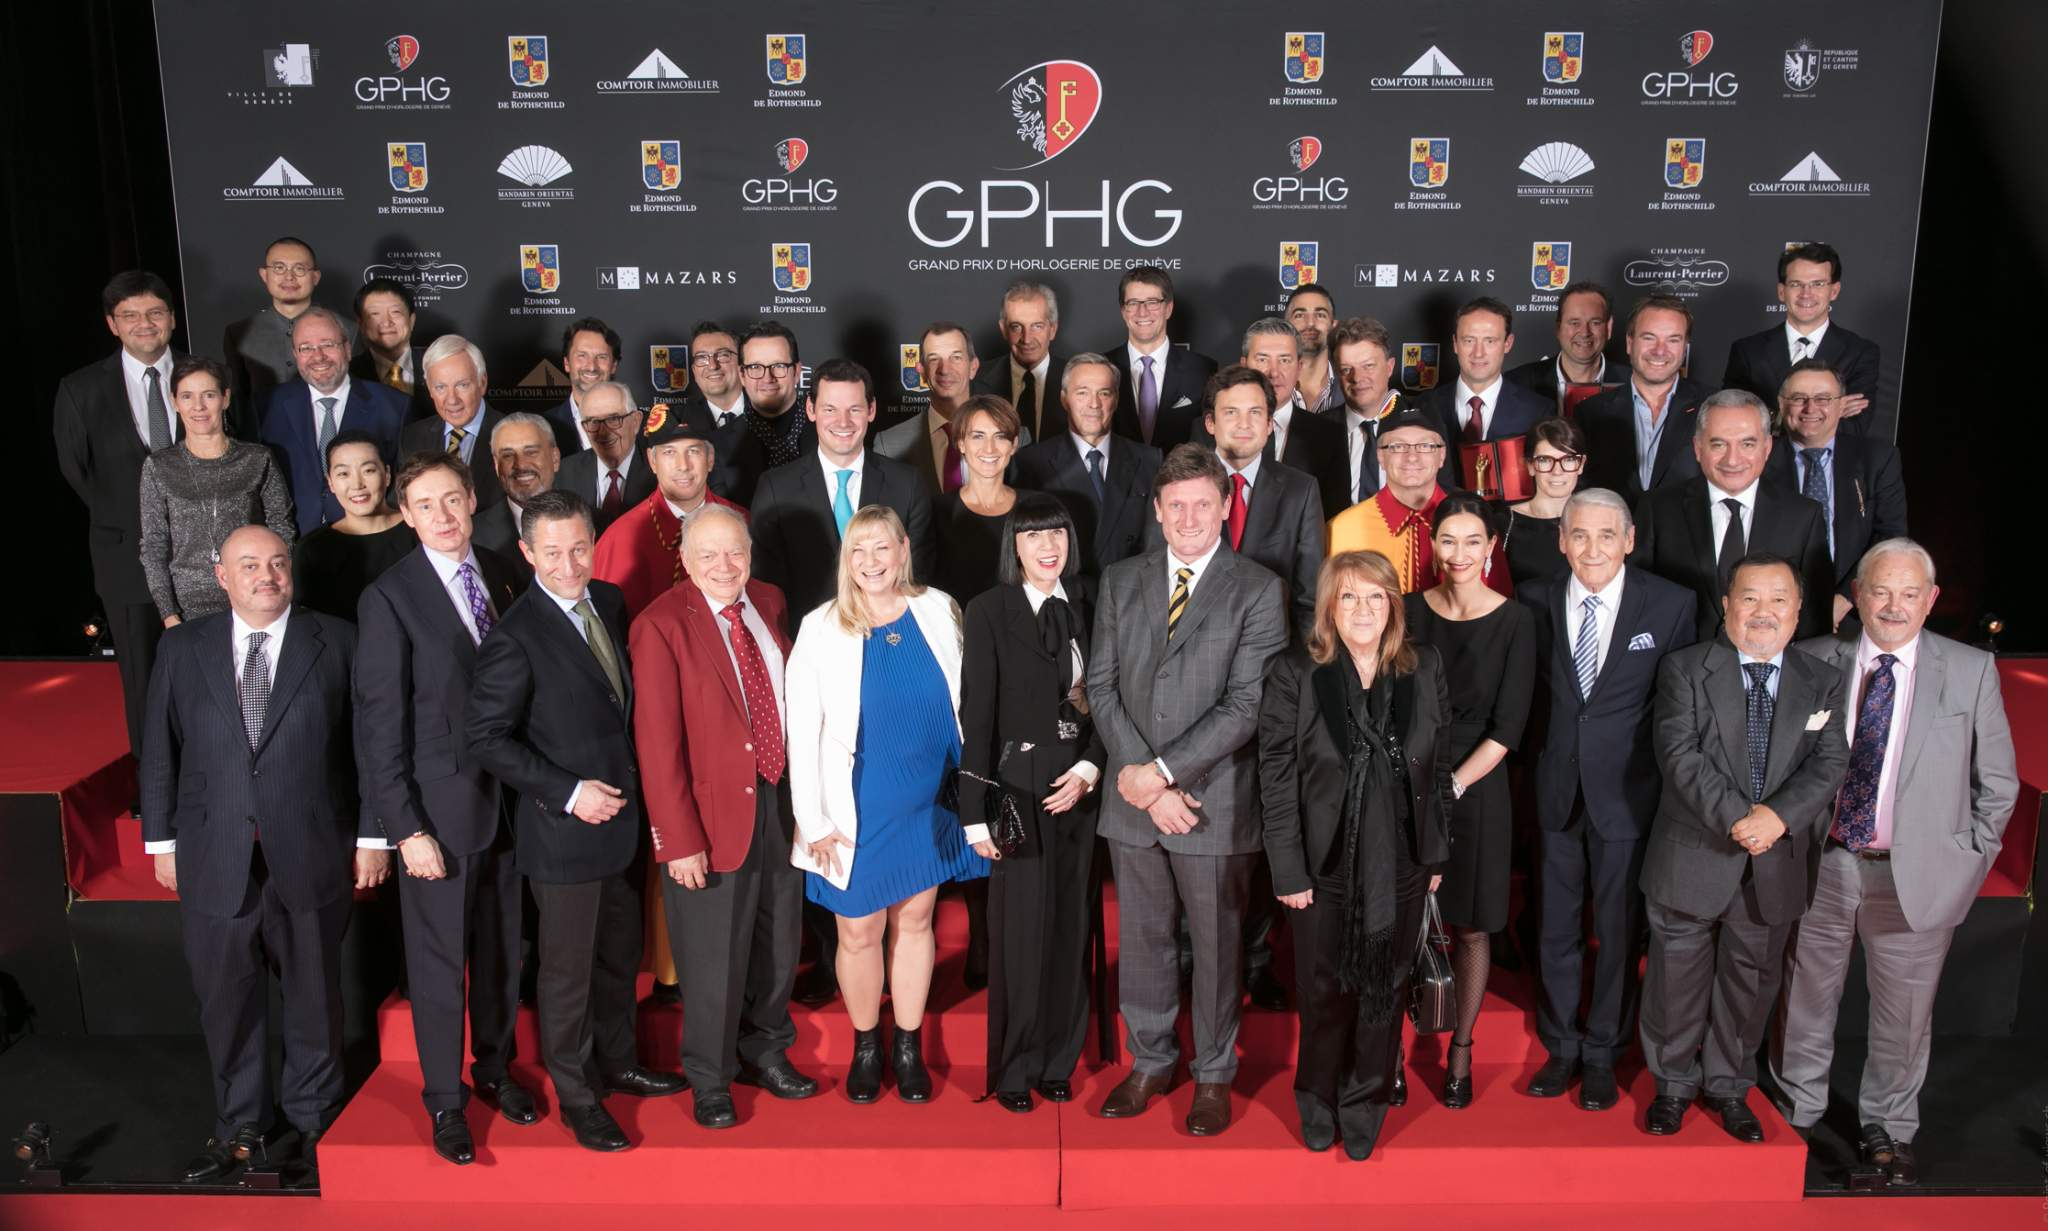 Winners, jury members, political authorities and board members of the Foundation of the GPHG at the prize-giving ceremony of the GPHG 16